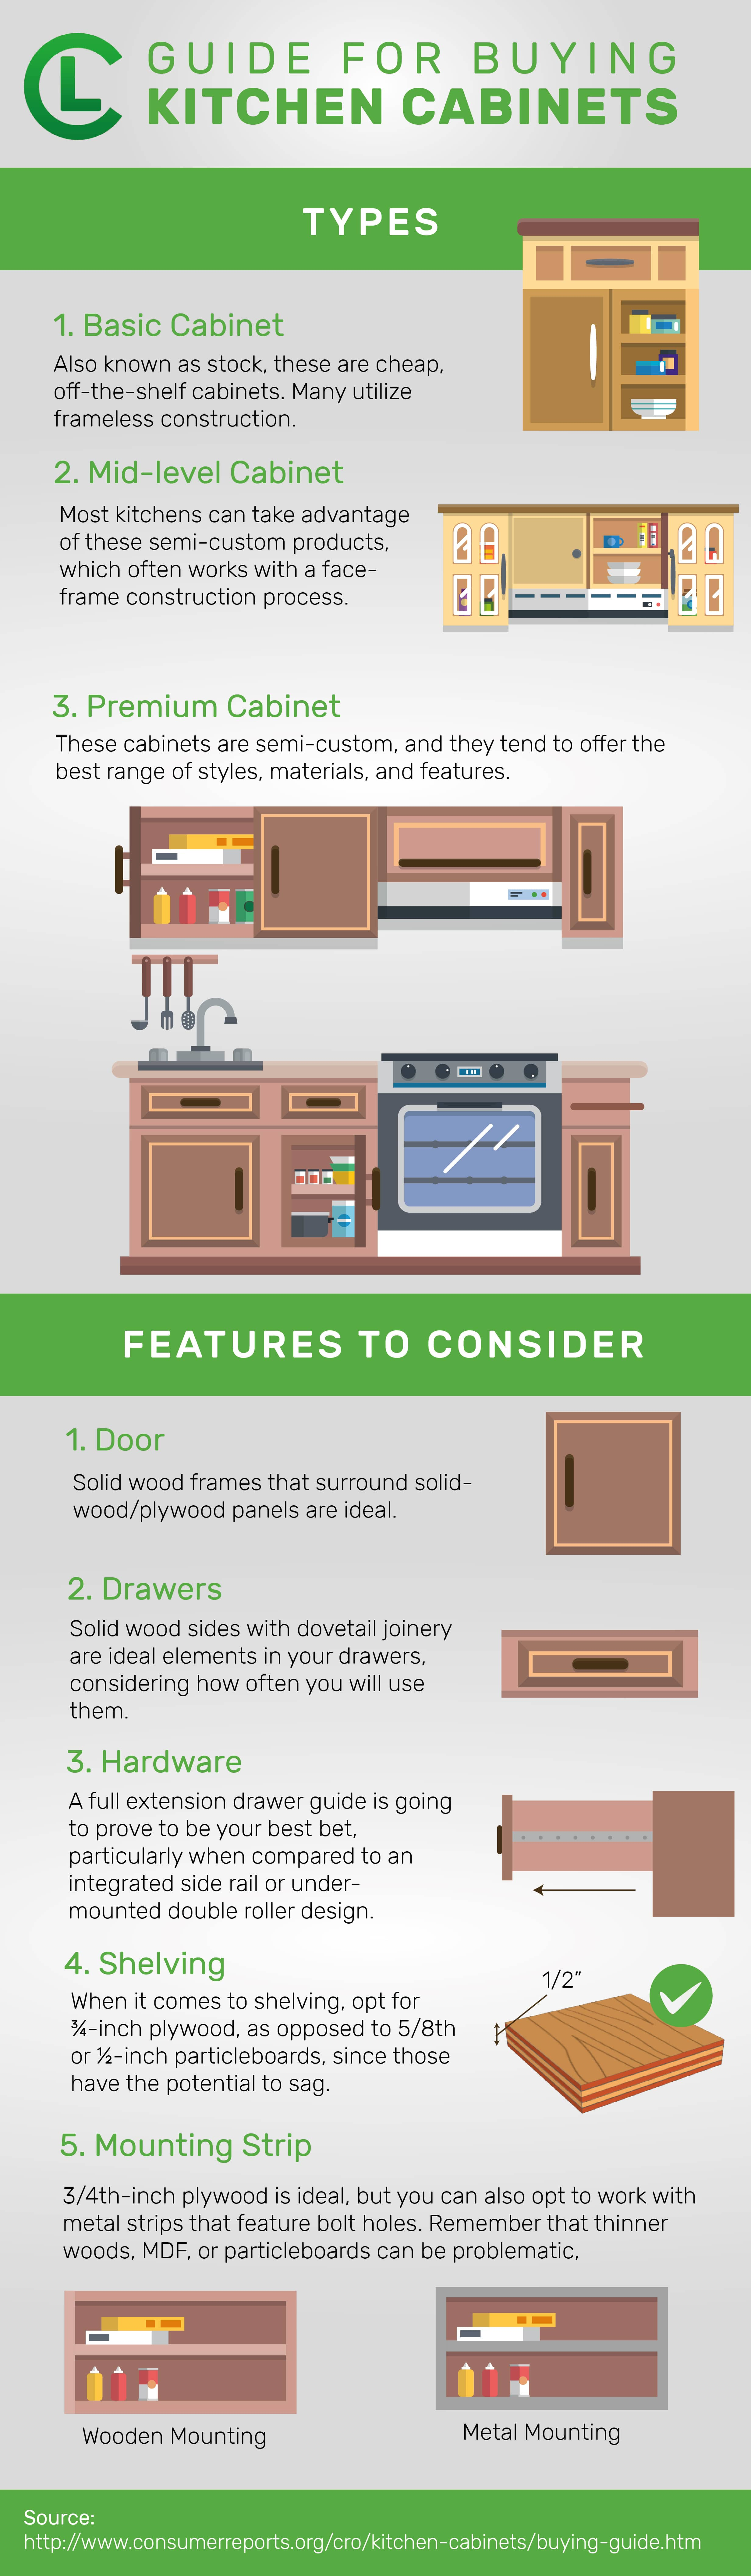 Guide For Buying Kitchen Cabinets Infographic